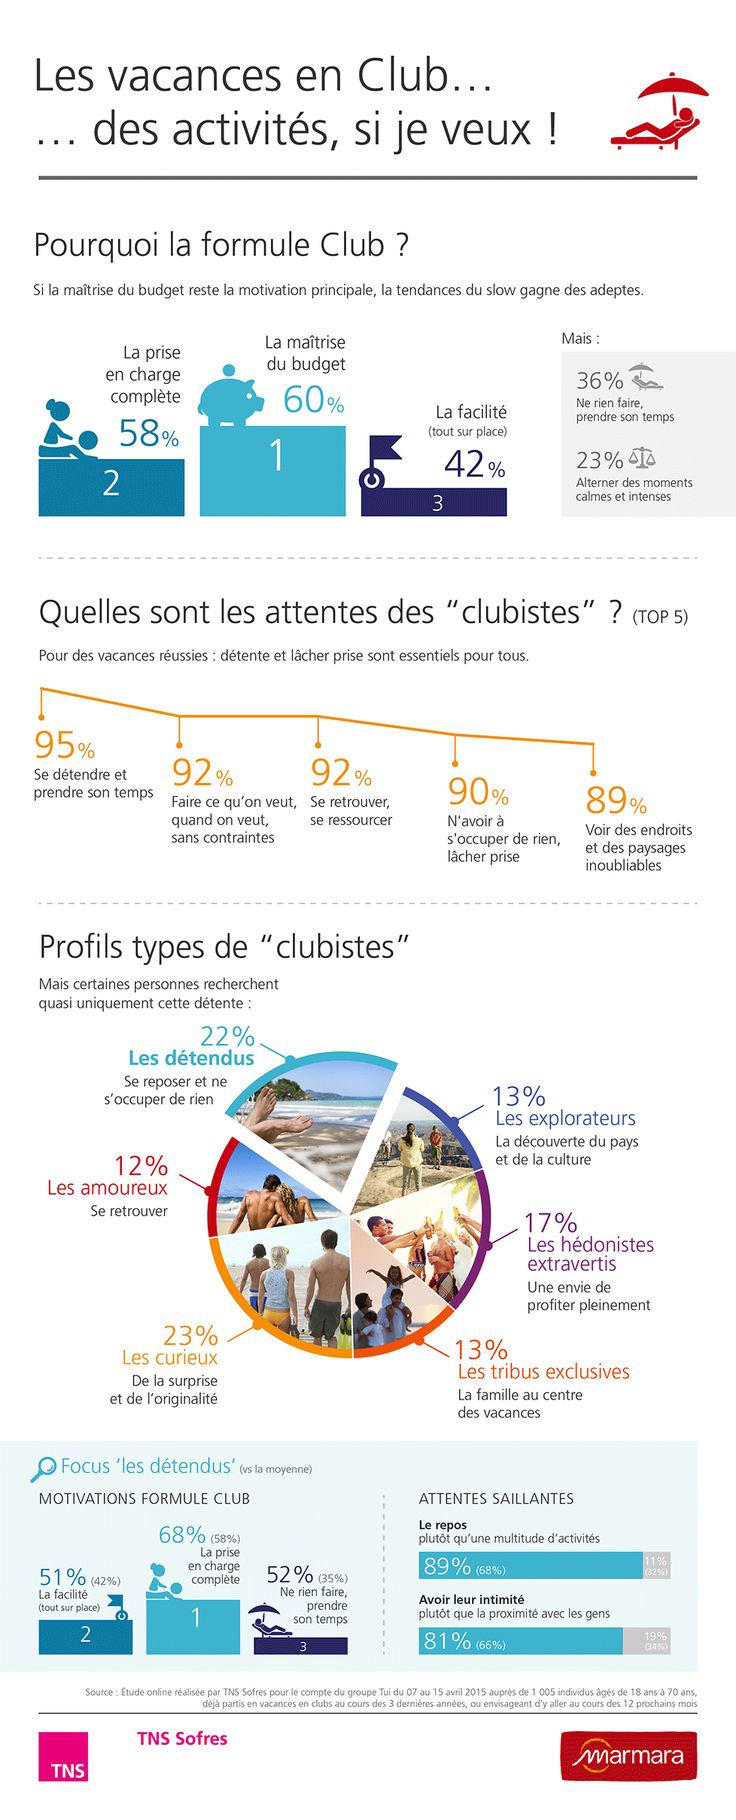 Holidays in France, an infographic from our TNS Sofres.